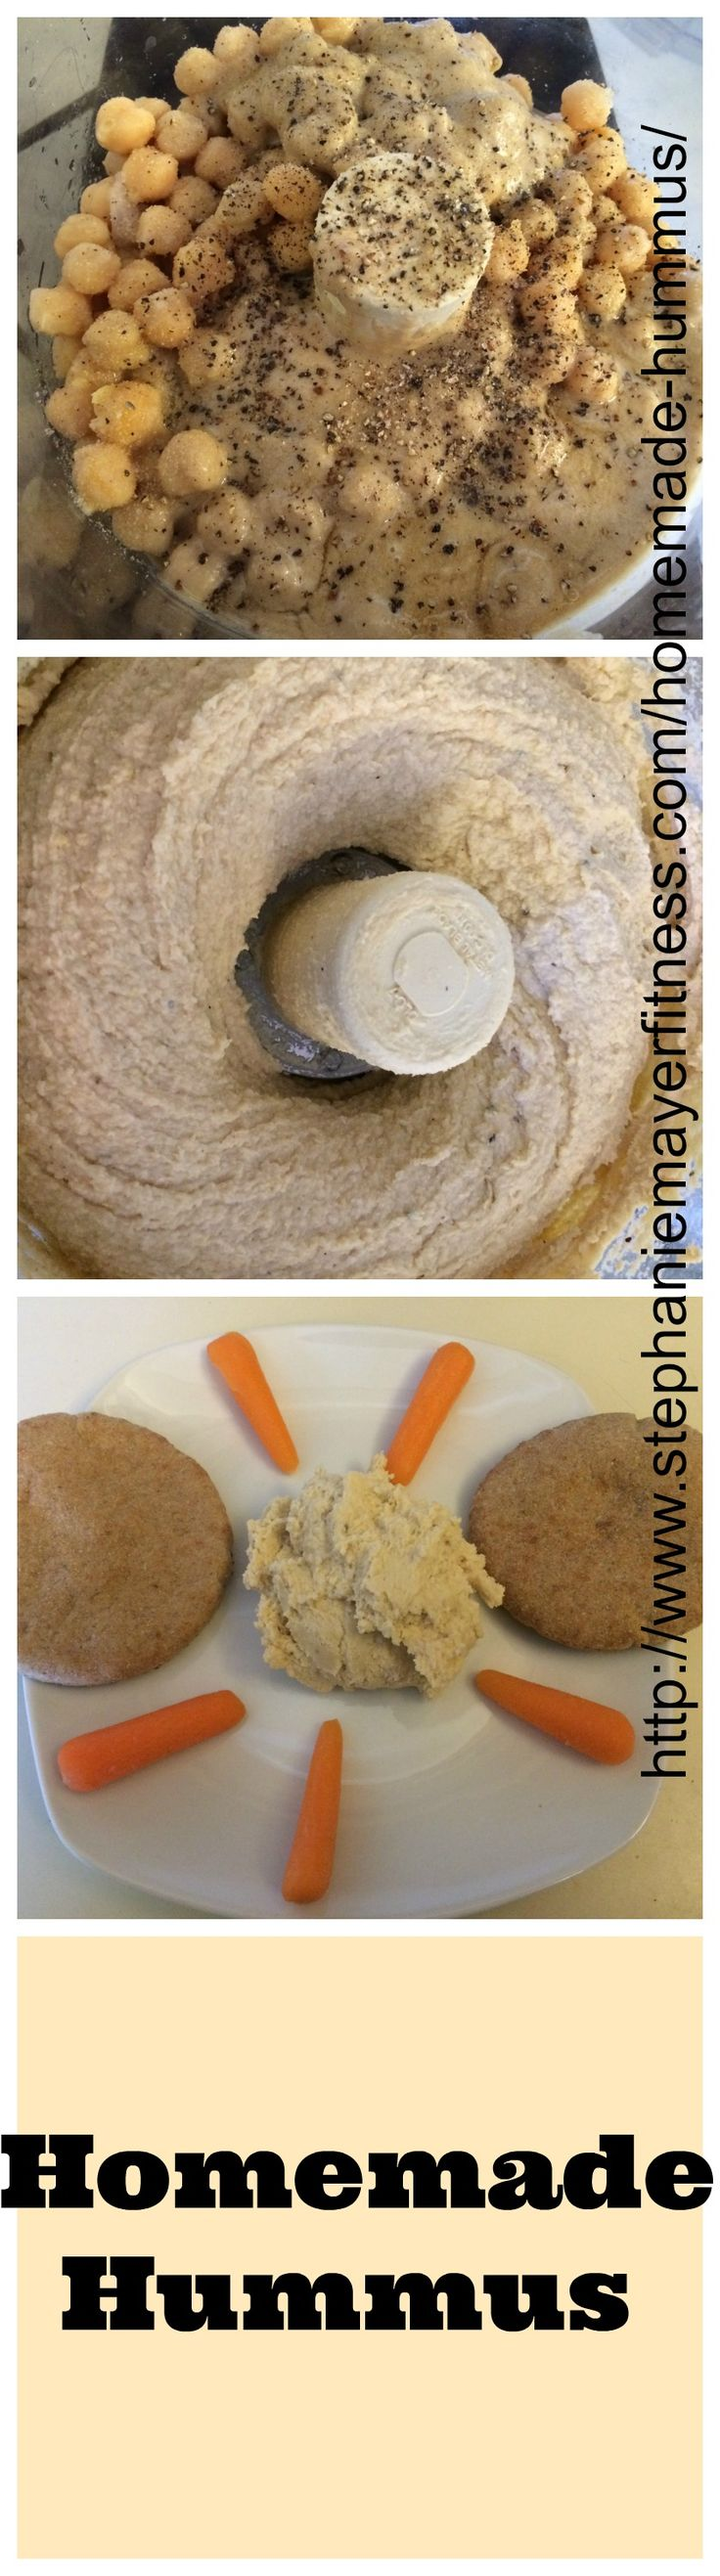 Easy and healthy recipes: Homemade hummus recipes https://www.drstephaniemayer.com/blog/homemade-hummus  Hummus is so easy to make and you can avoid all the preservatives.